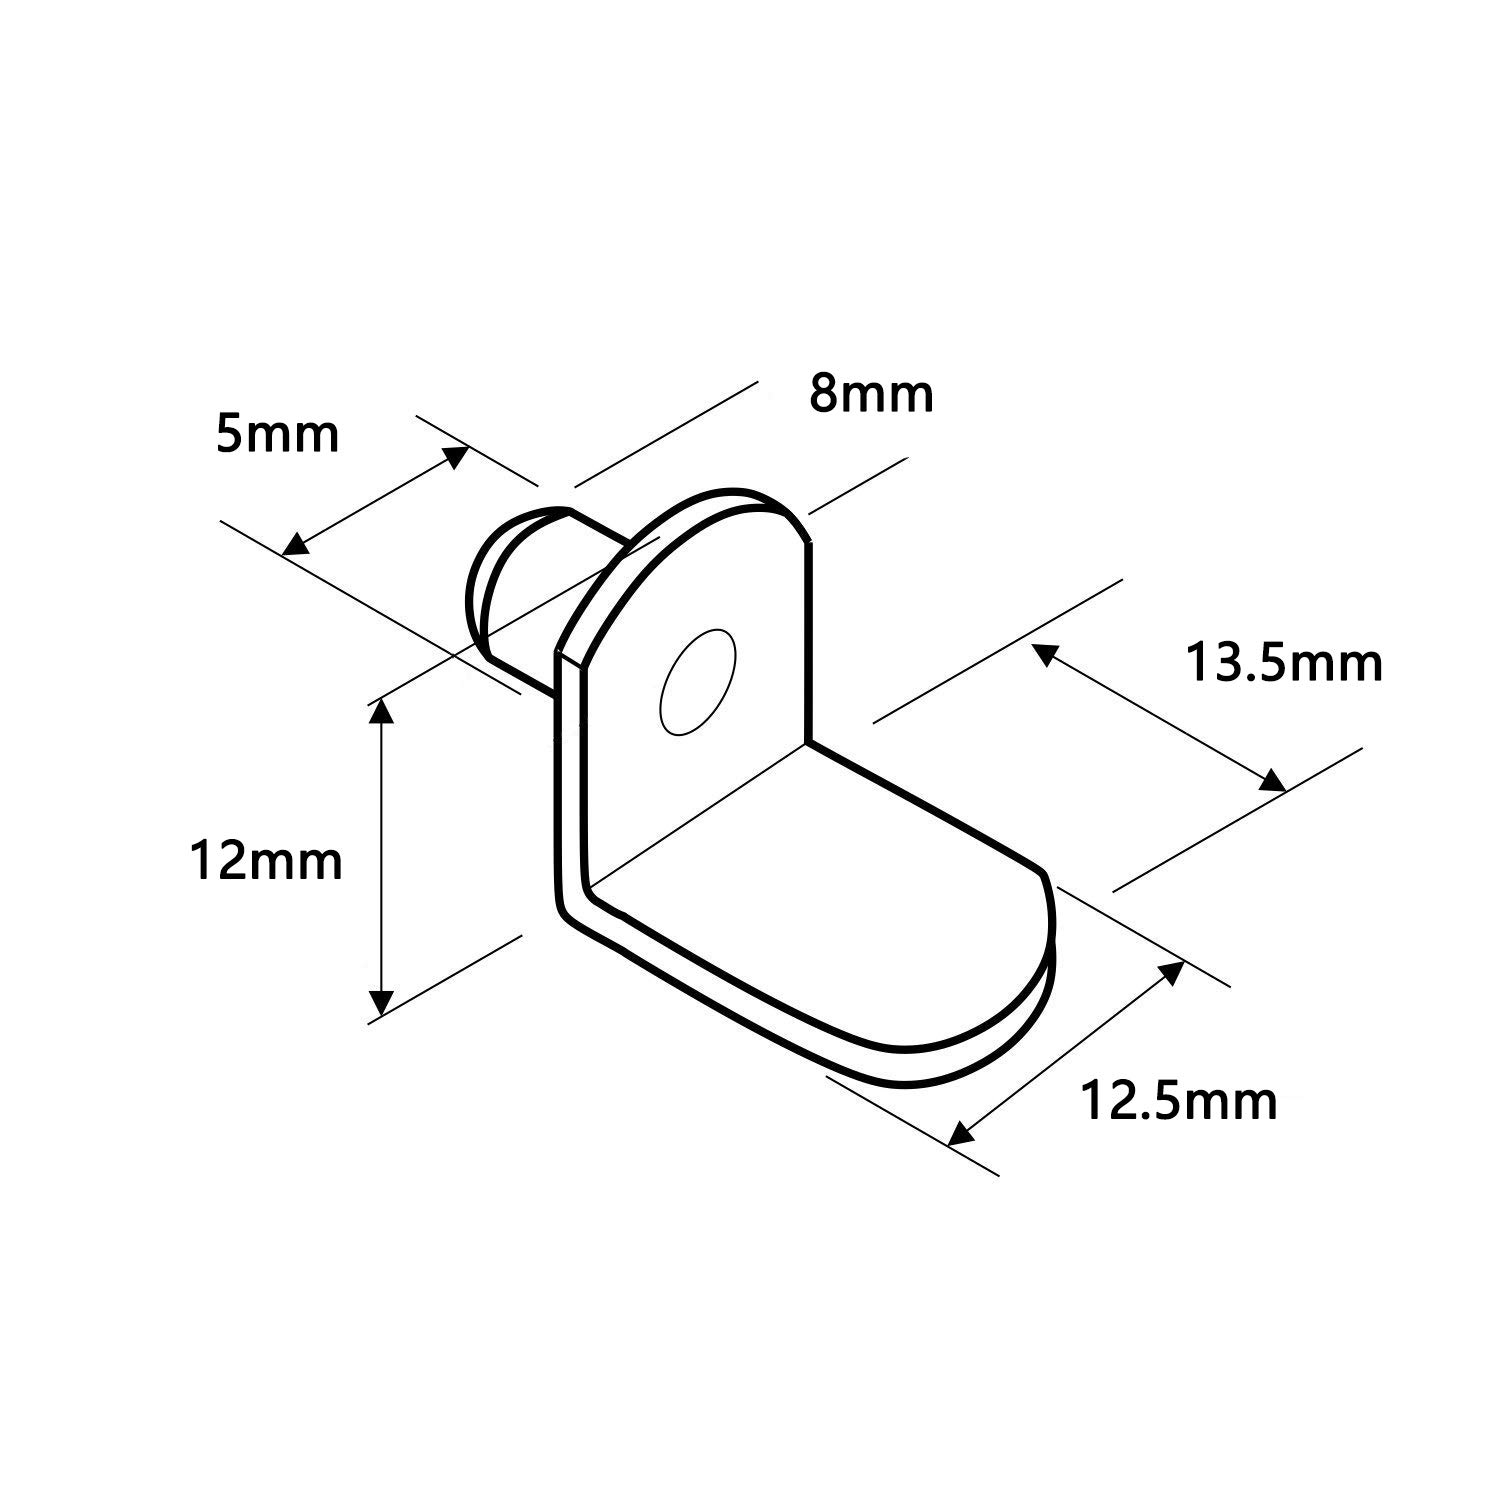 6x10mm, No Hole L-Shaped Shelf Bracket Pegs Support for Furniture Polished Nickel Karcy 100pcs Silver